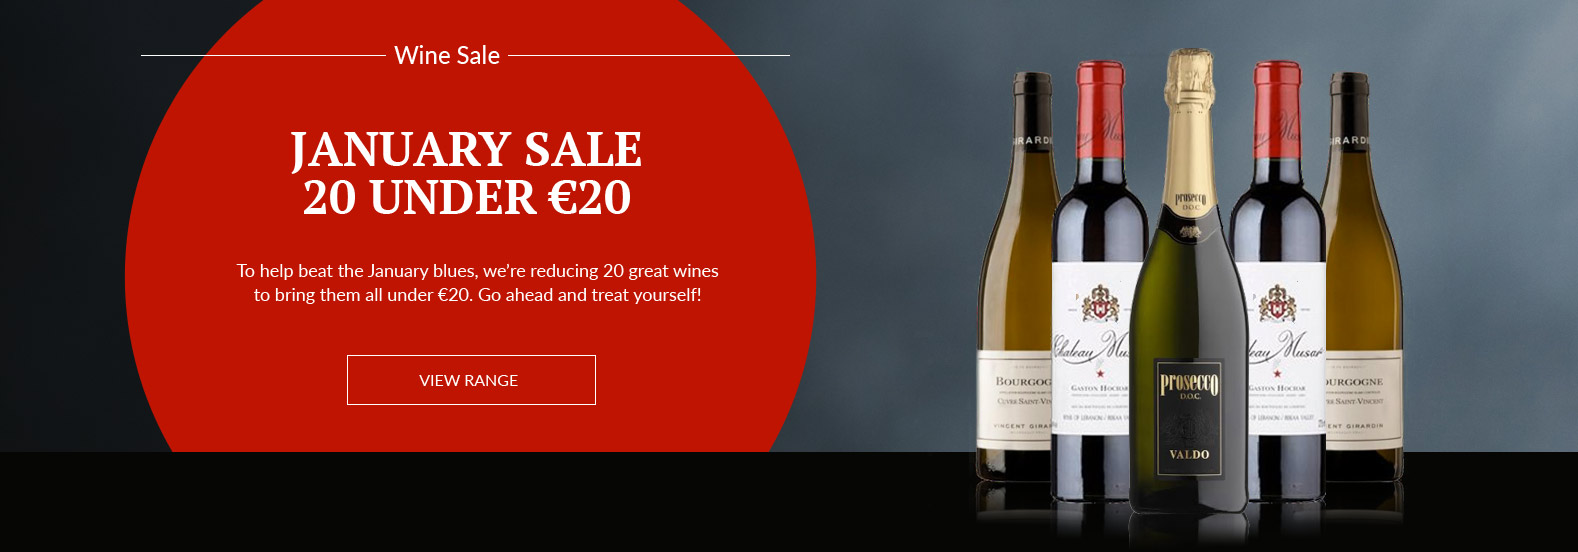 Selection of wines on sale